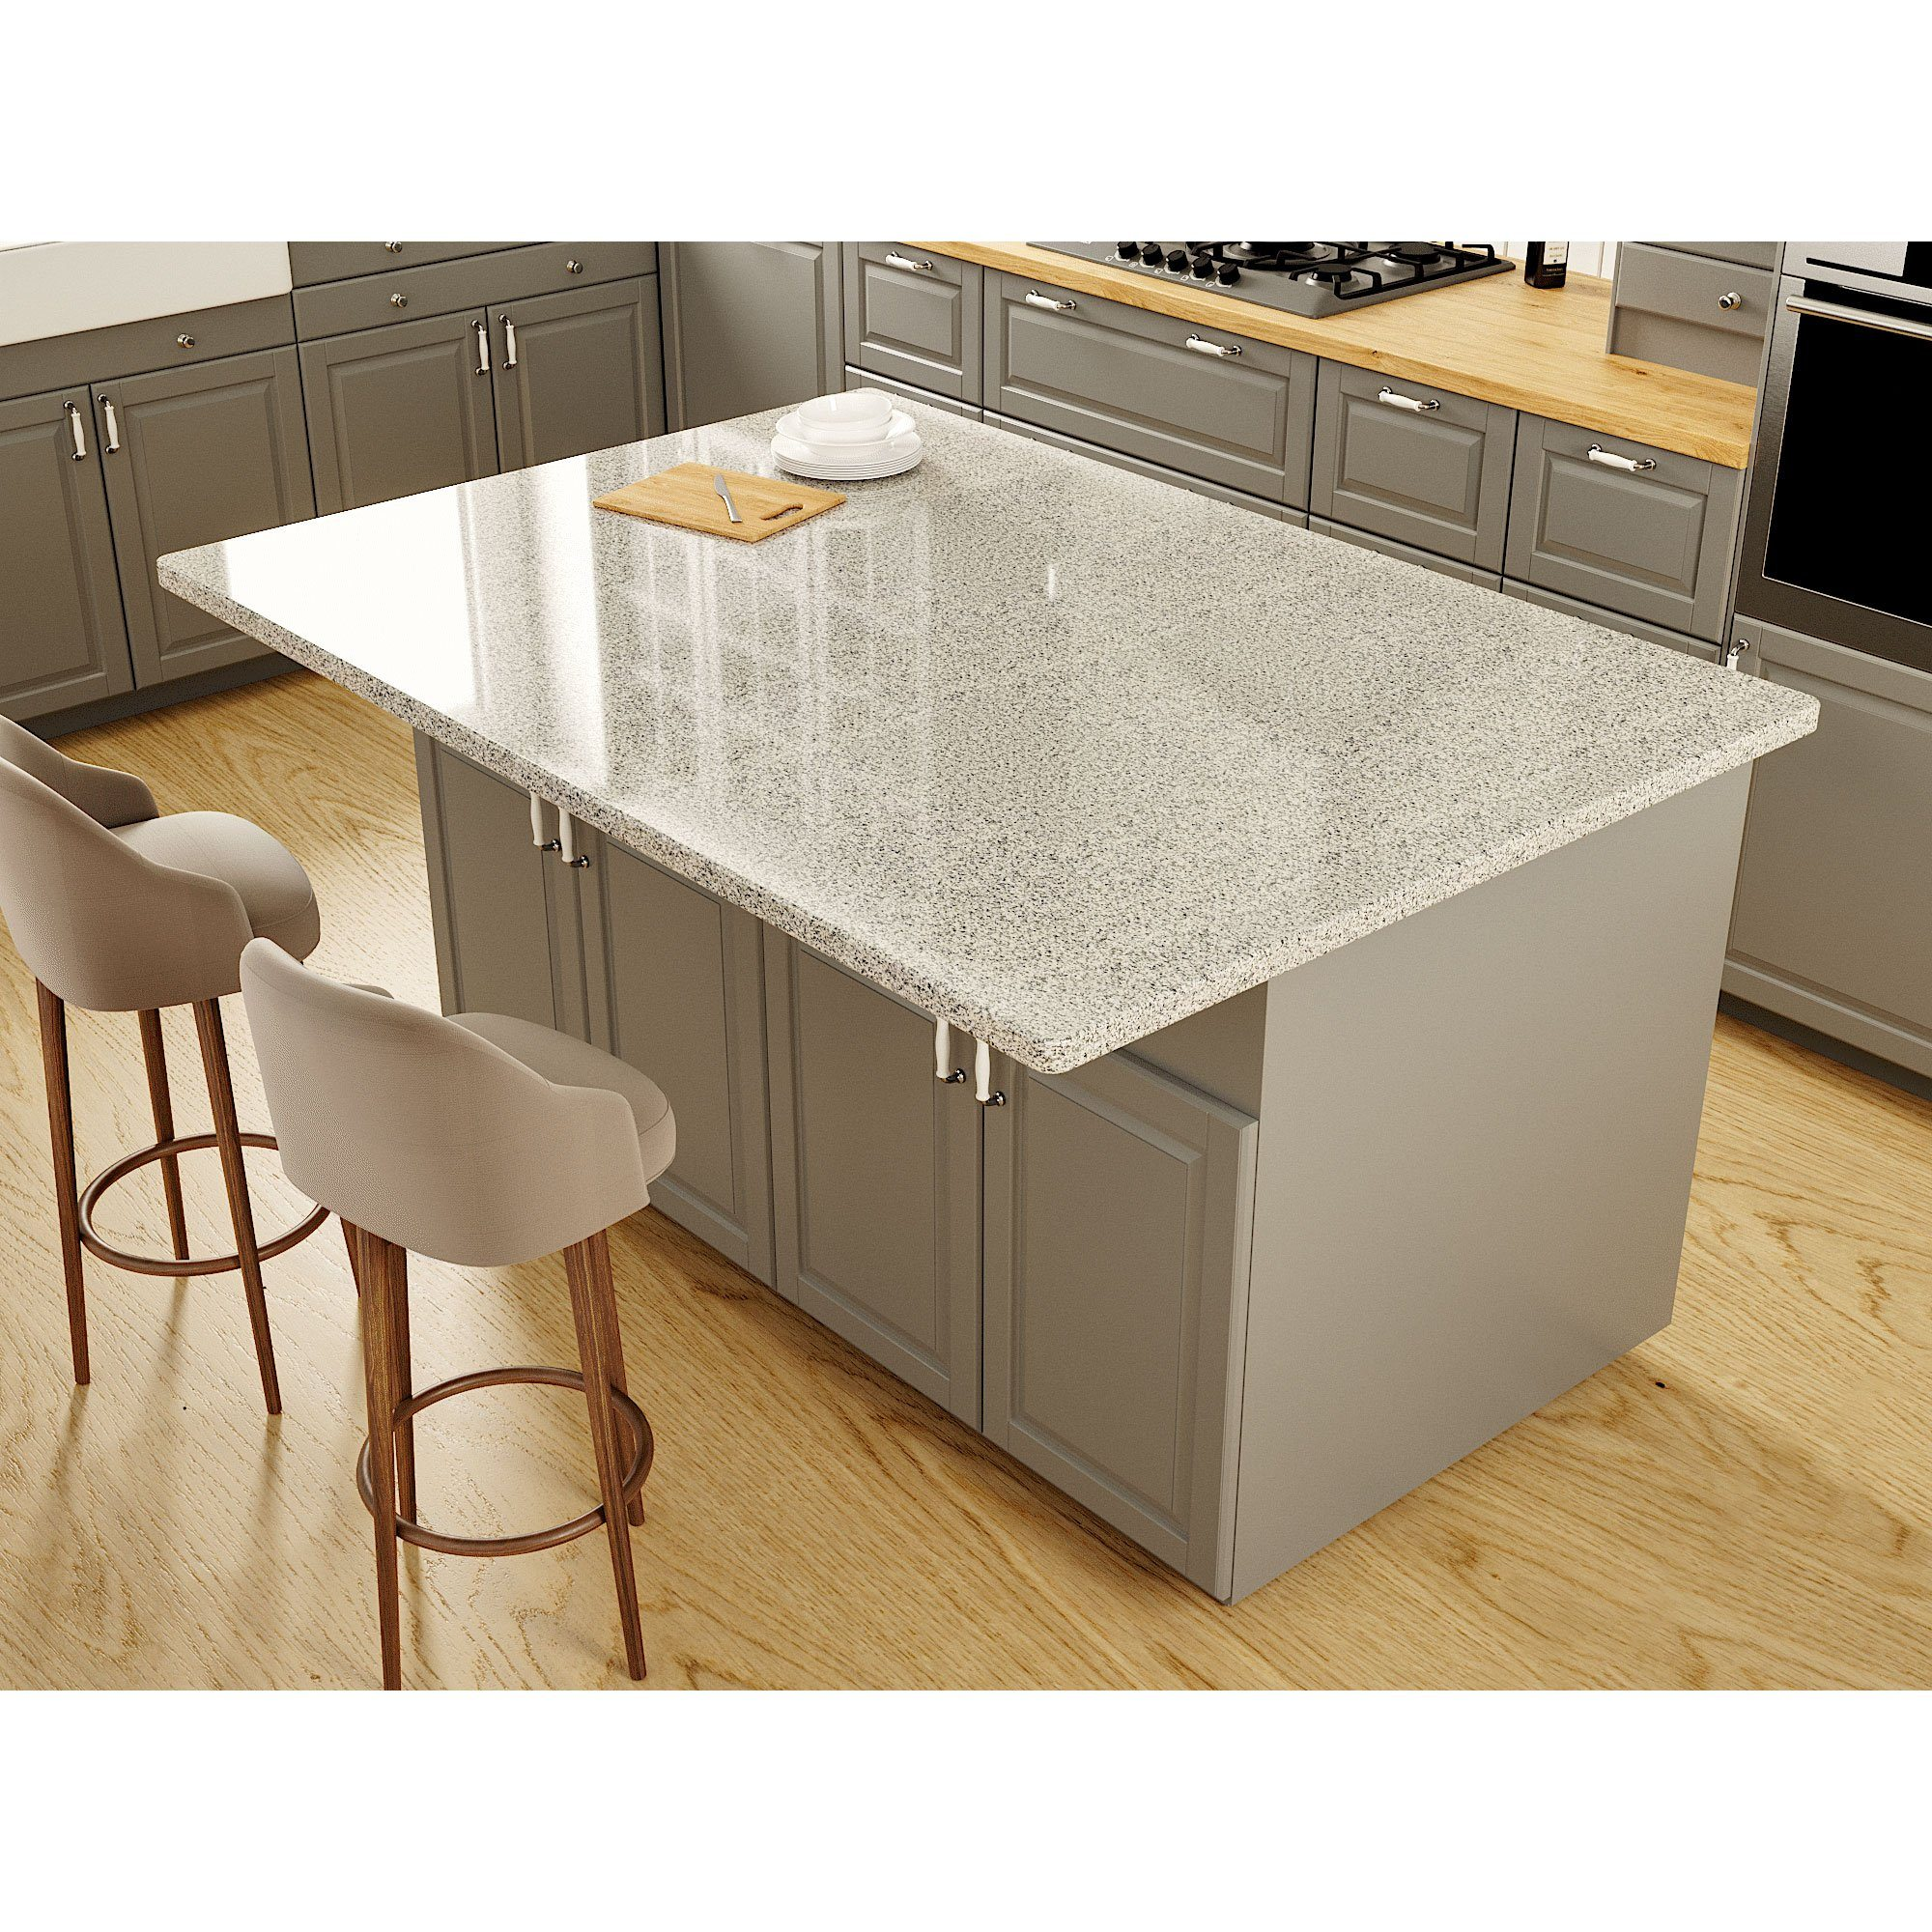 Hidden L Bracket for Supporting an Island or Countertop Overhang